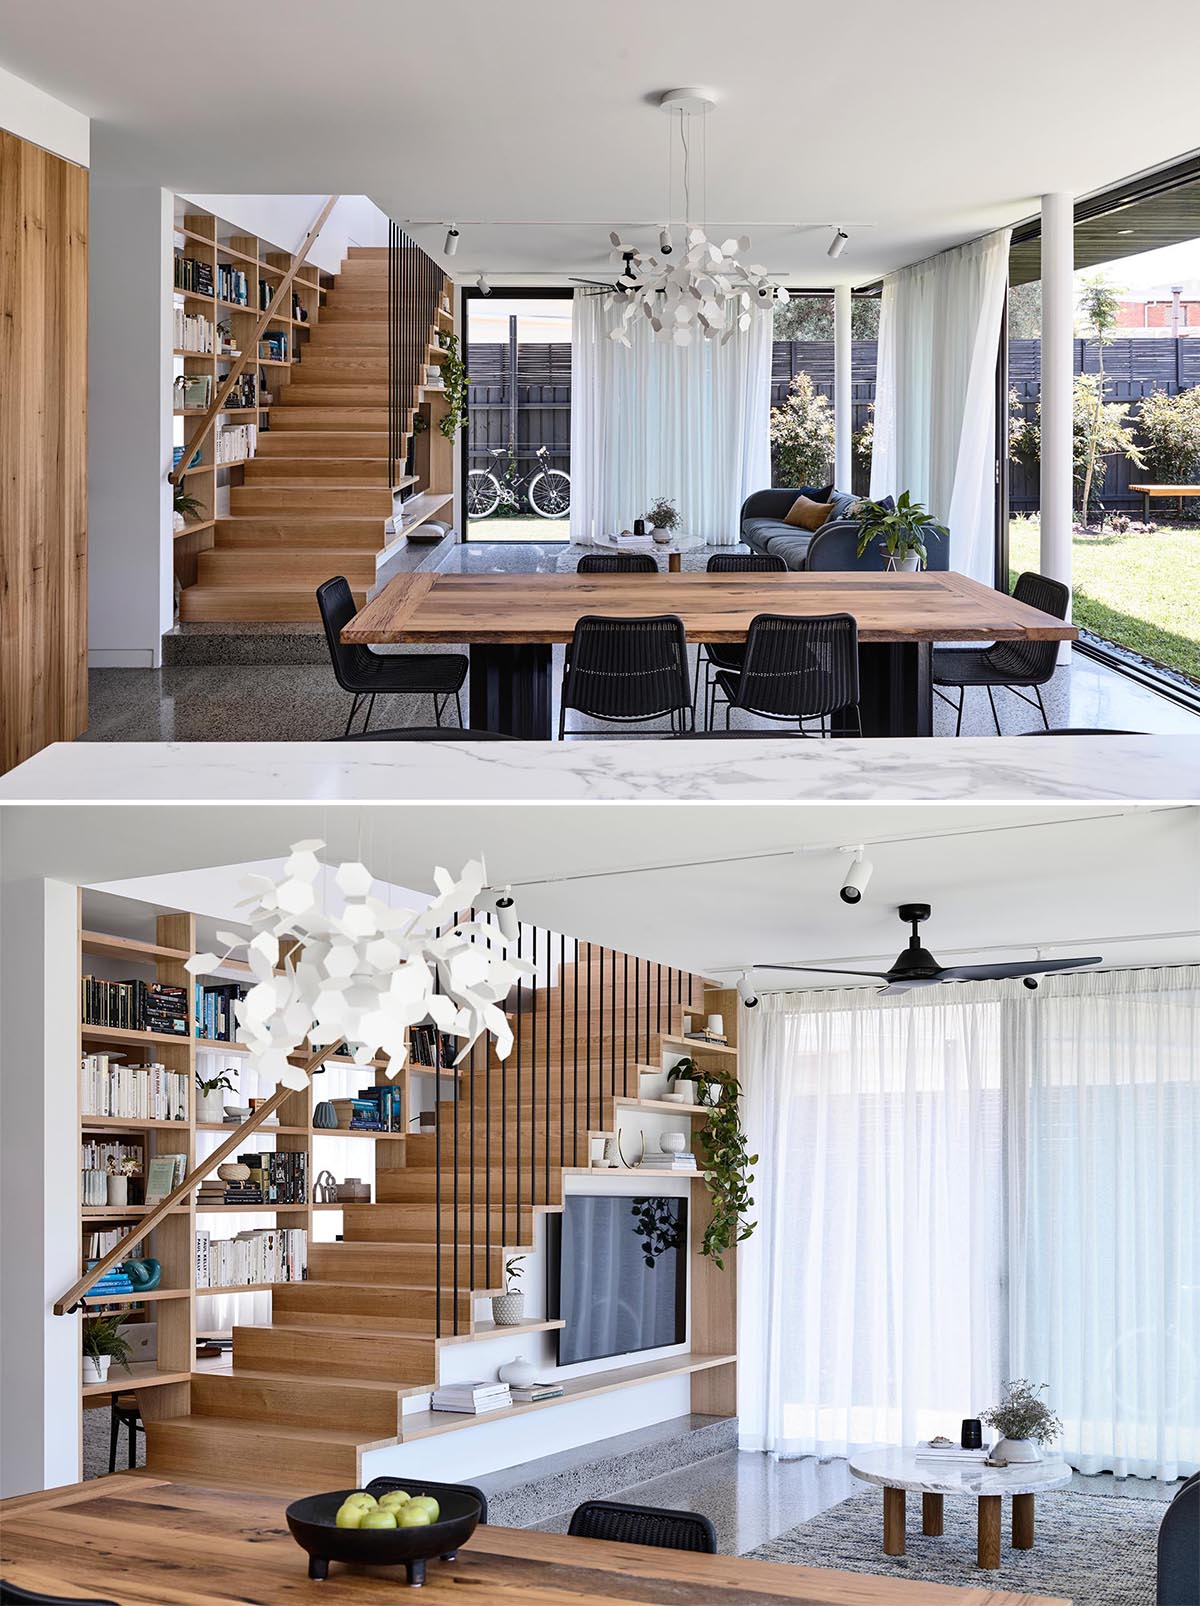 The living room is focused on the television and shelving, which have been cleverly integrated into the design of the stairs.